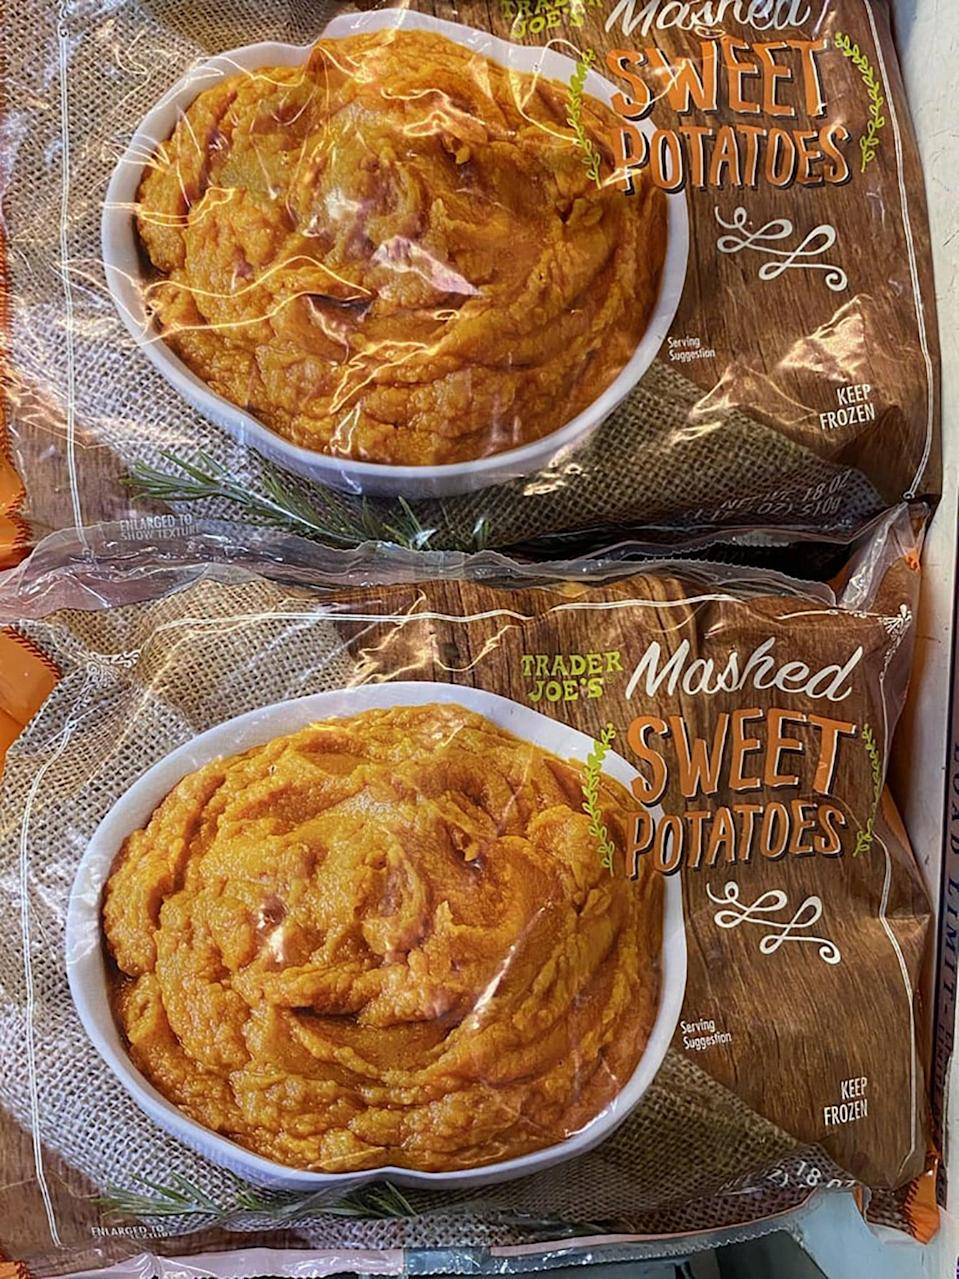 <p>One bag, which has about 3.5 servings, costs $2.50. That's pretty reasonable considering one regular-size sweet potato costs about $1.50. It's definitely worth adding a bag to your cart the next time you go to Trader Joe's.</p>